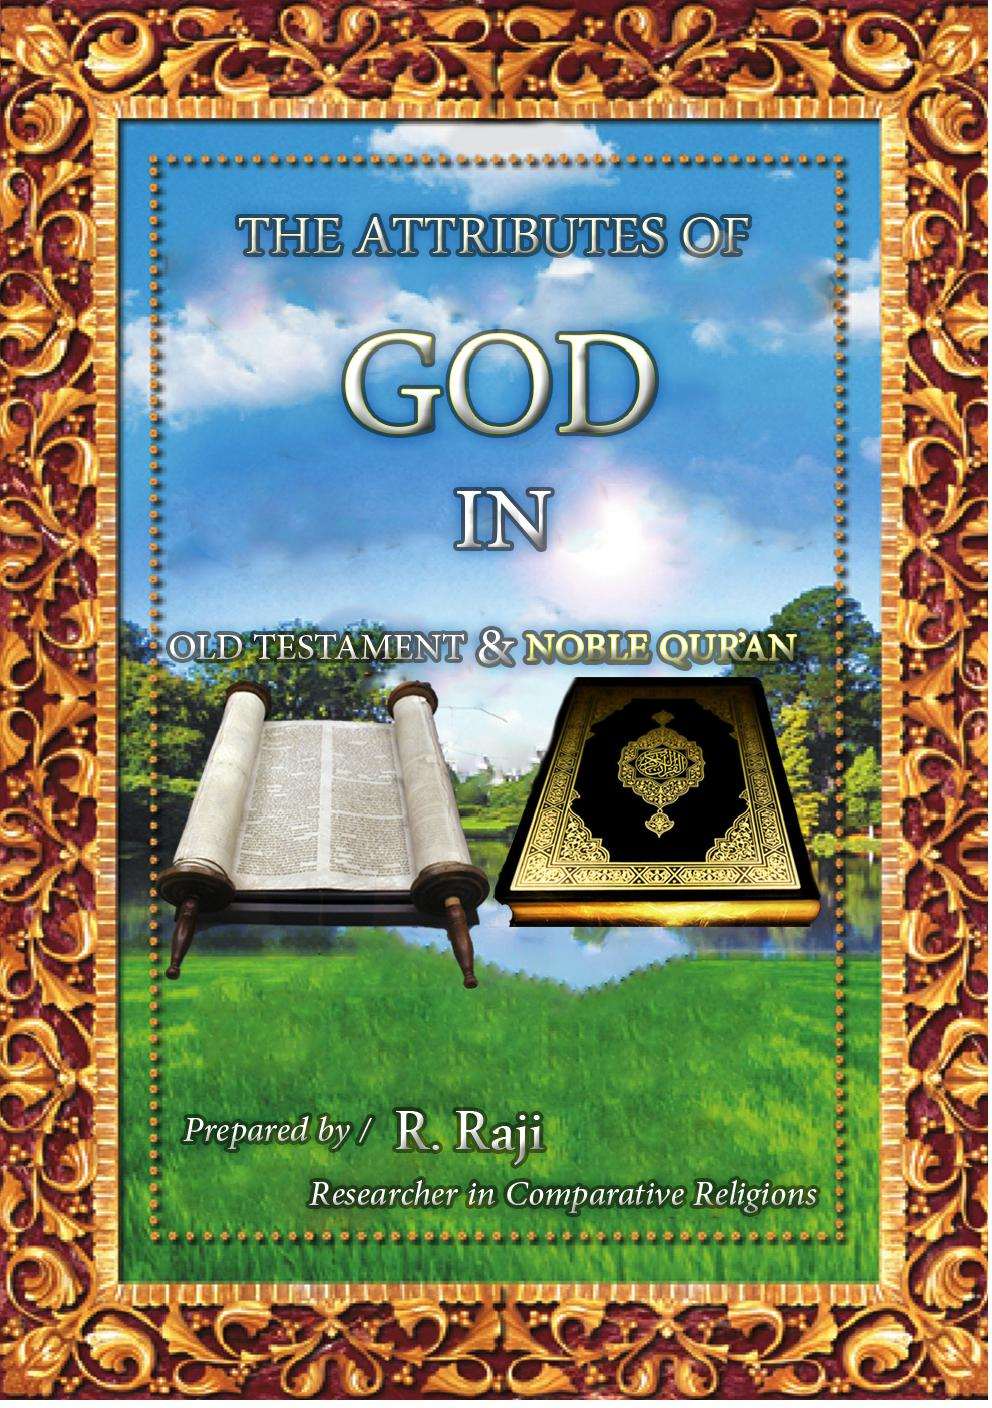 THE ATTRIBUTES OF GOD IN OLD TESTAMENT & NOBLE QUR'AN